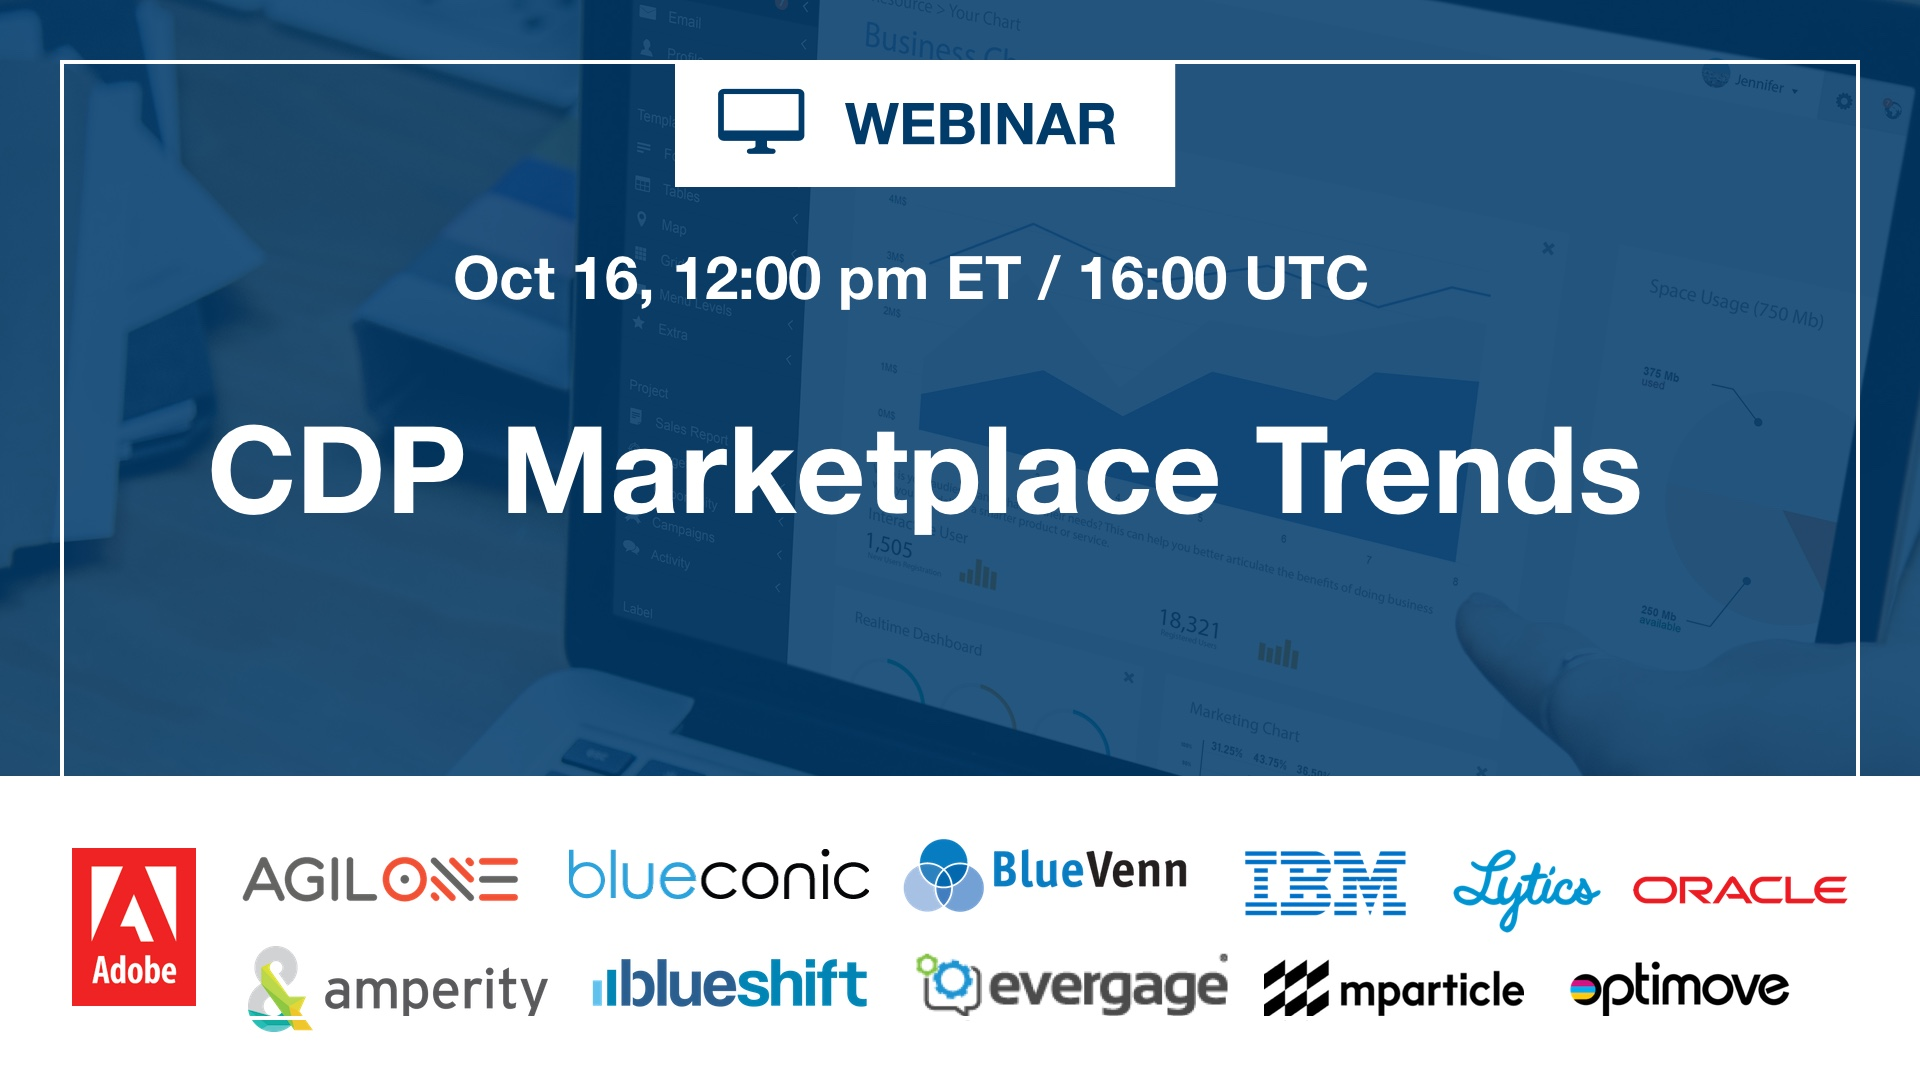 CDP Marketplace Trends